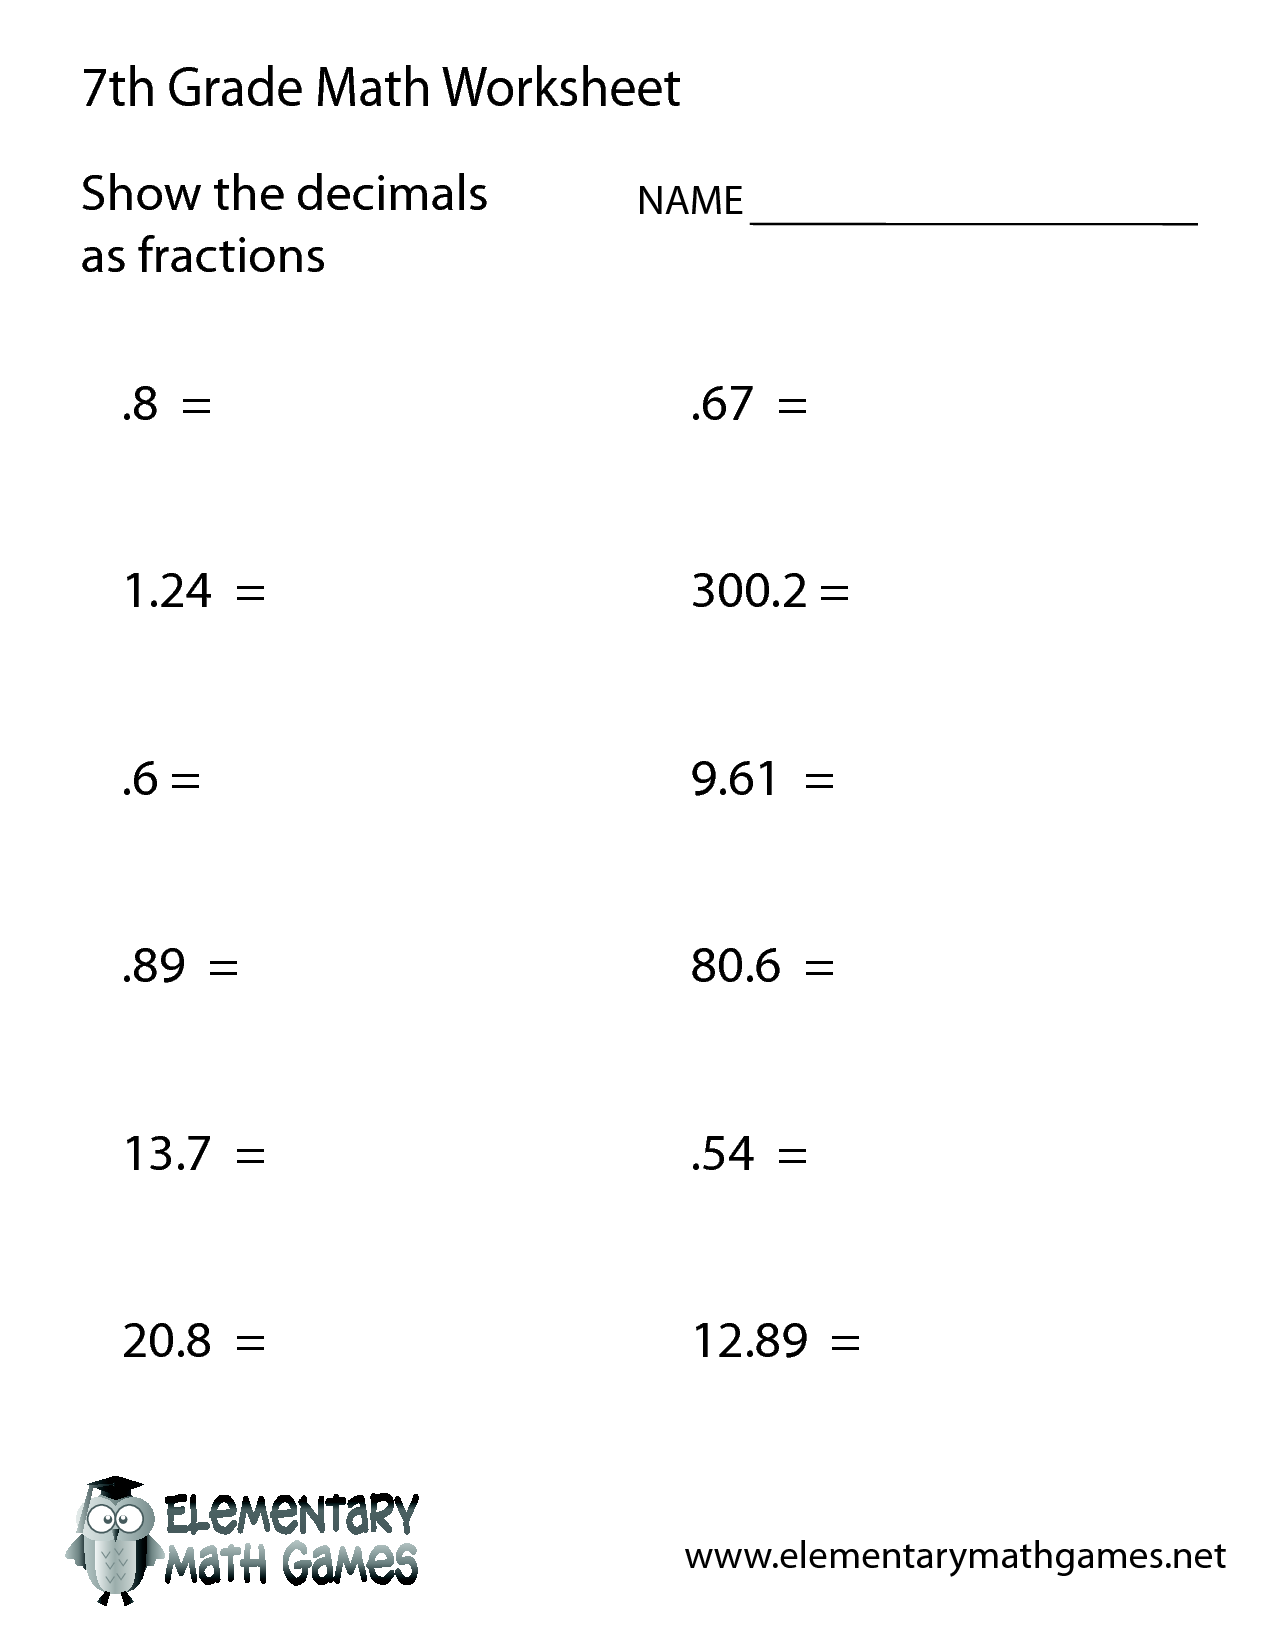 Worksheet Free Printable 7th Grade Math Worksheets Kerriwaller – Free Math Worksheets for Grade 7